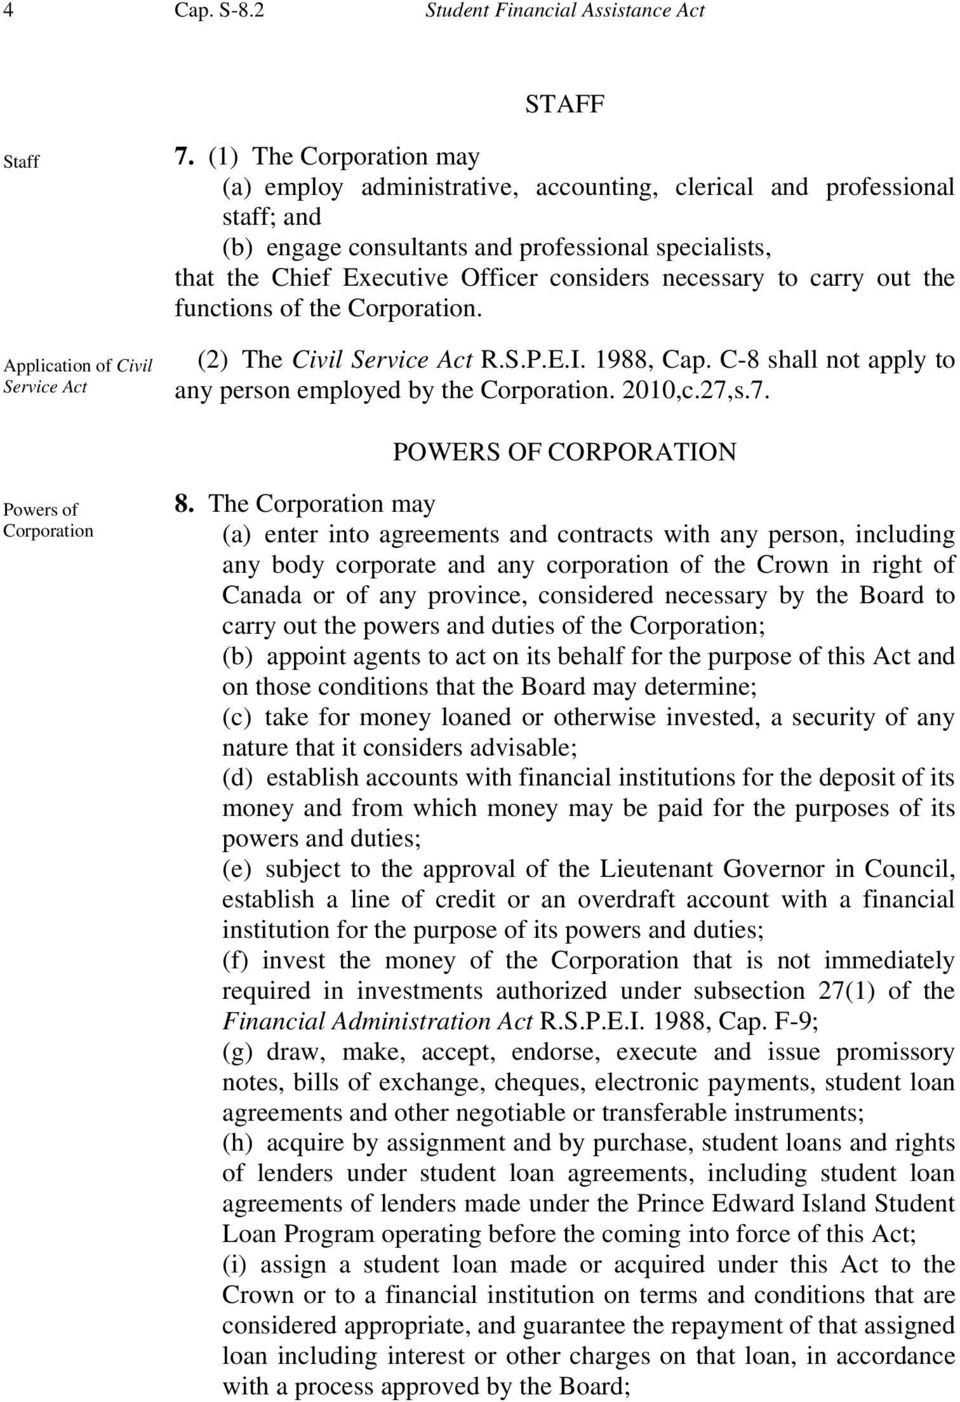 necessary to carry out the functions of the Corporation. (2) The Civil Service Act R.S.P.E.I. 1988, Cap. C-8 shall not apply to any person employed by the Corporation. 2010,c.27,